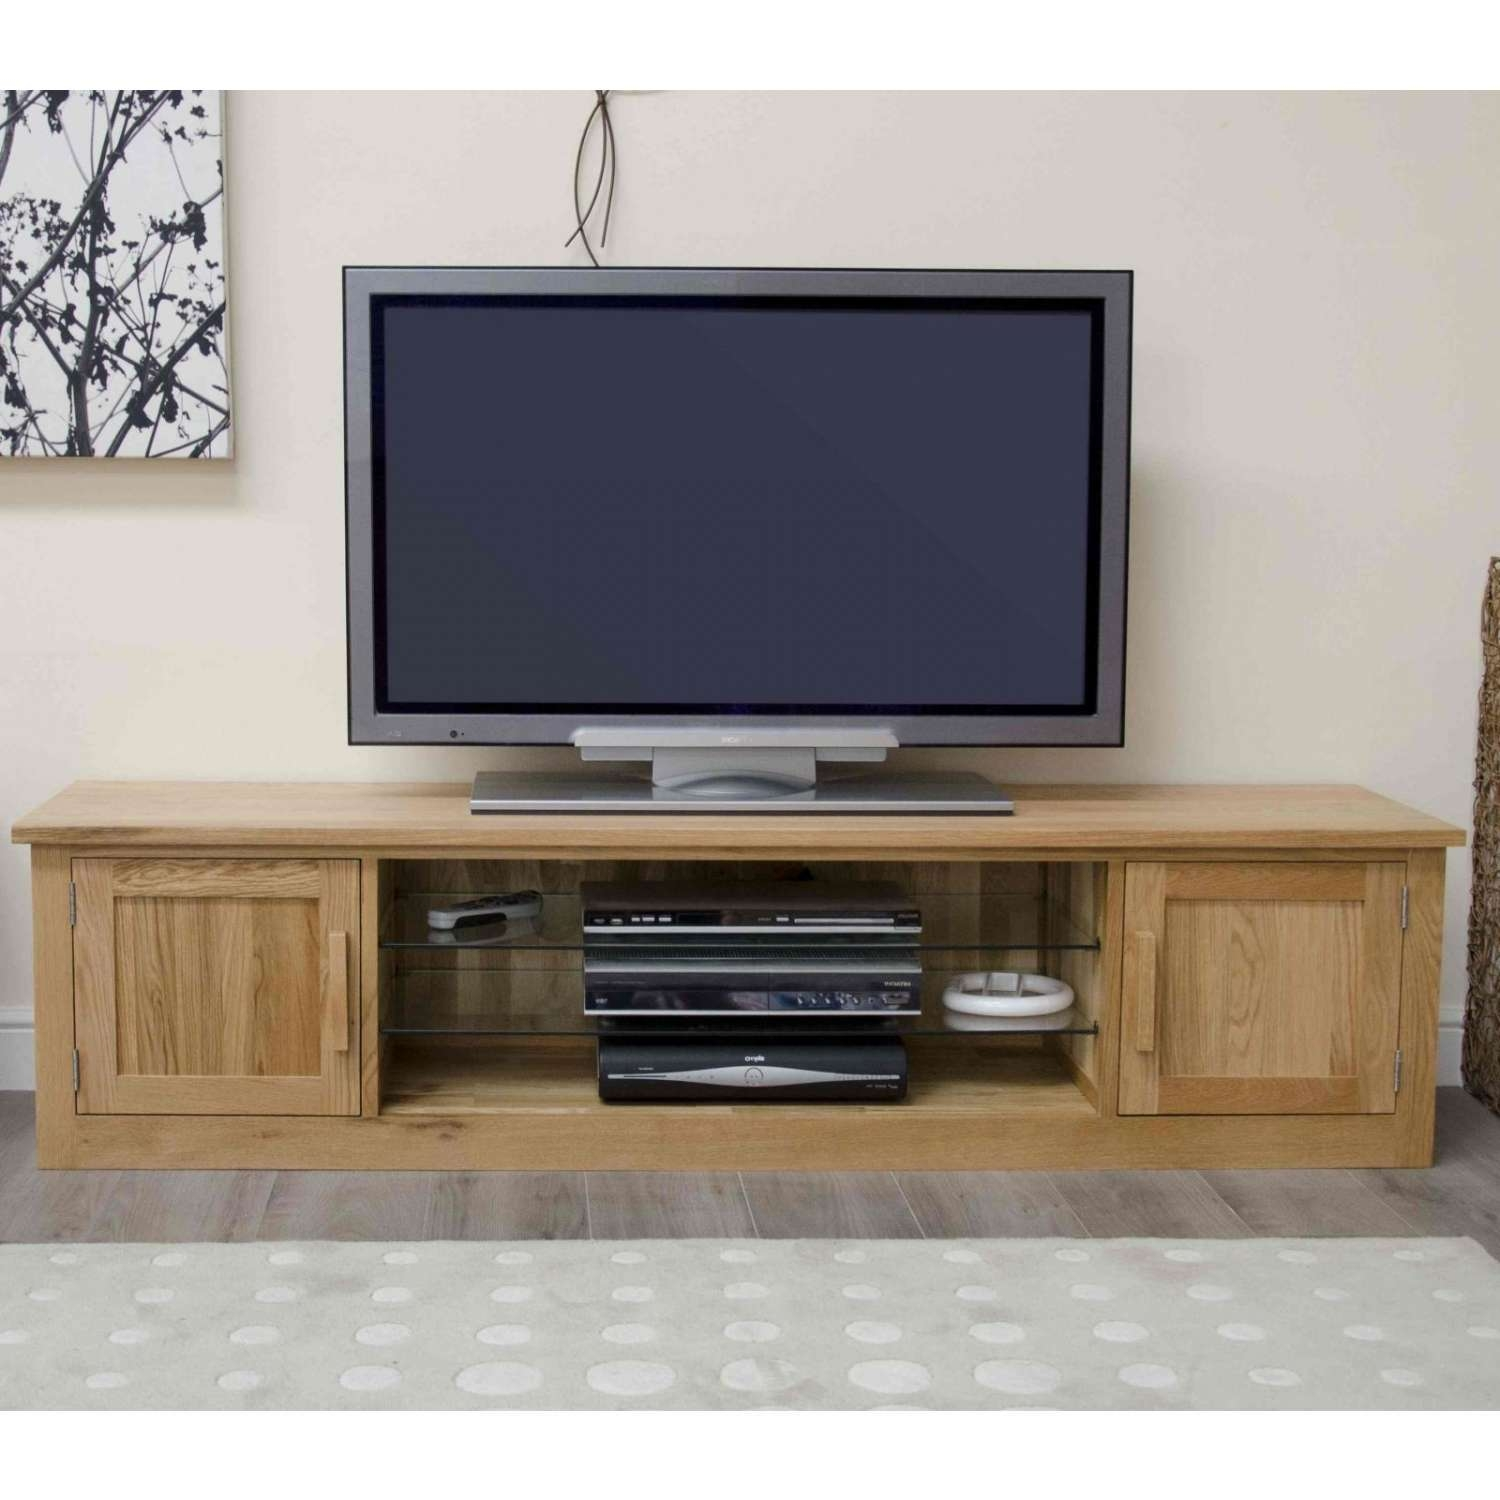 Arden Solid Oak Living Room Furniture Large Widescreen Tv Cabinet Inside Rustic Oak Tv Stands (View 8 of 15)